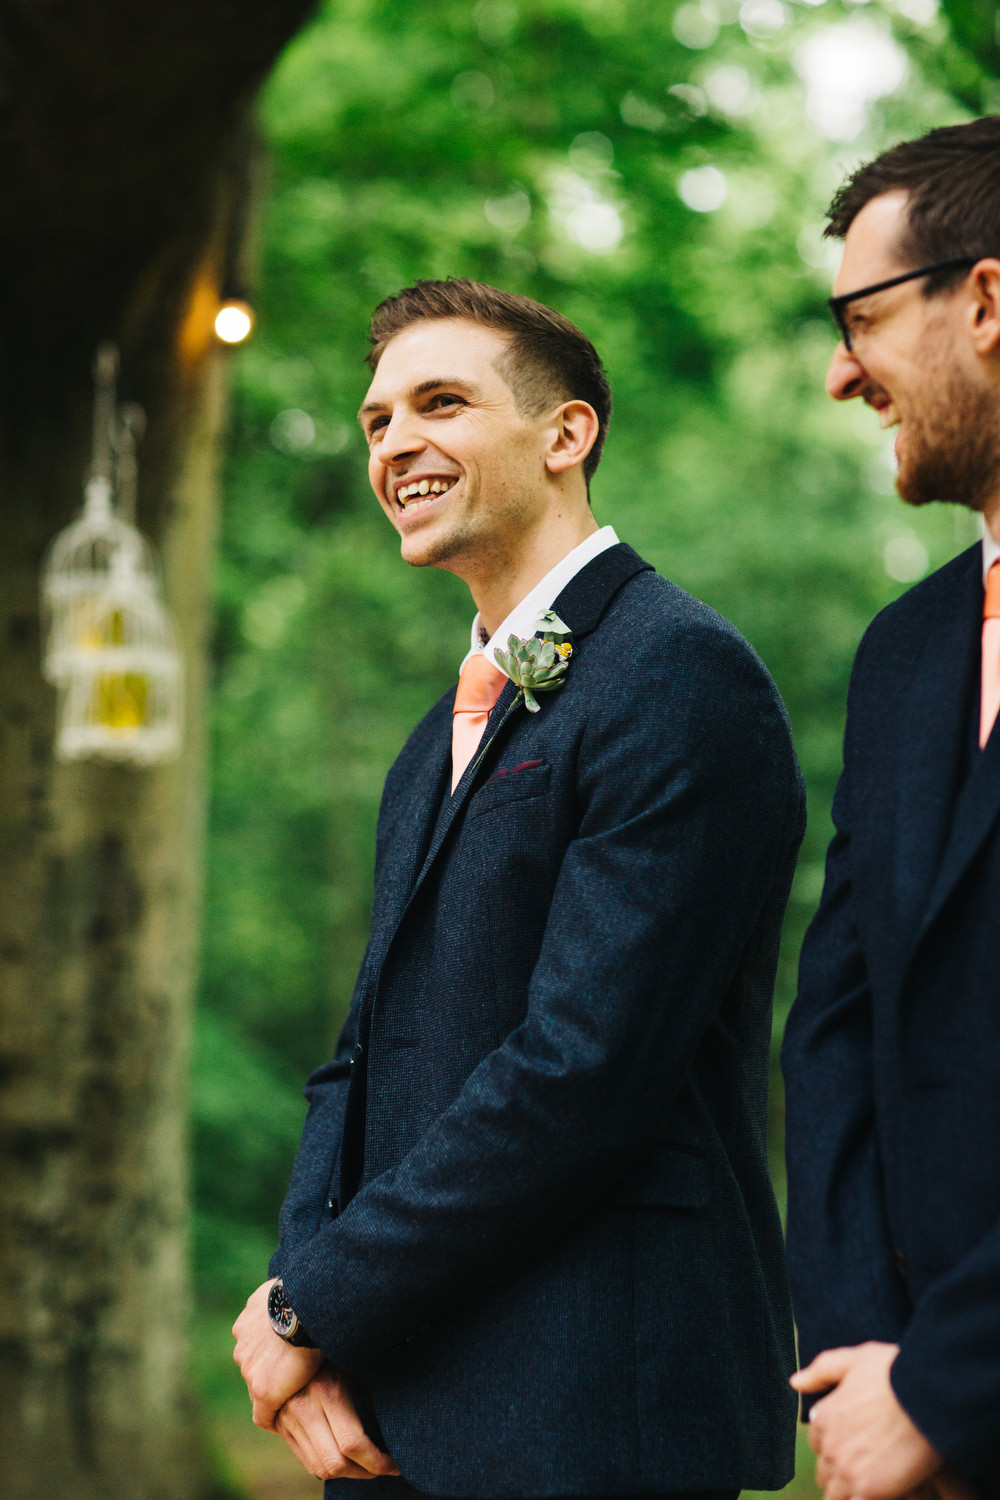 Diy rustic outdoor tipi wedding at ecclesall woods in sheffield bridesmaid dresses groom at the outdoor altar ombrellifo Choice Image